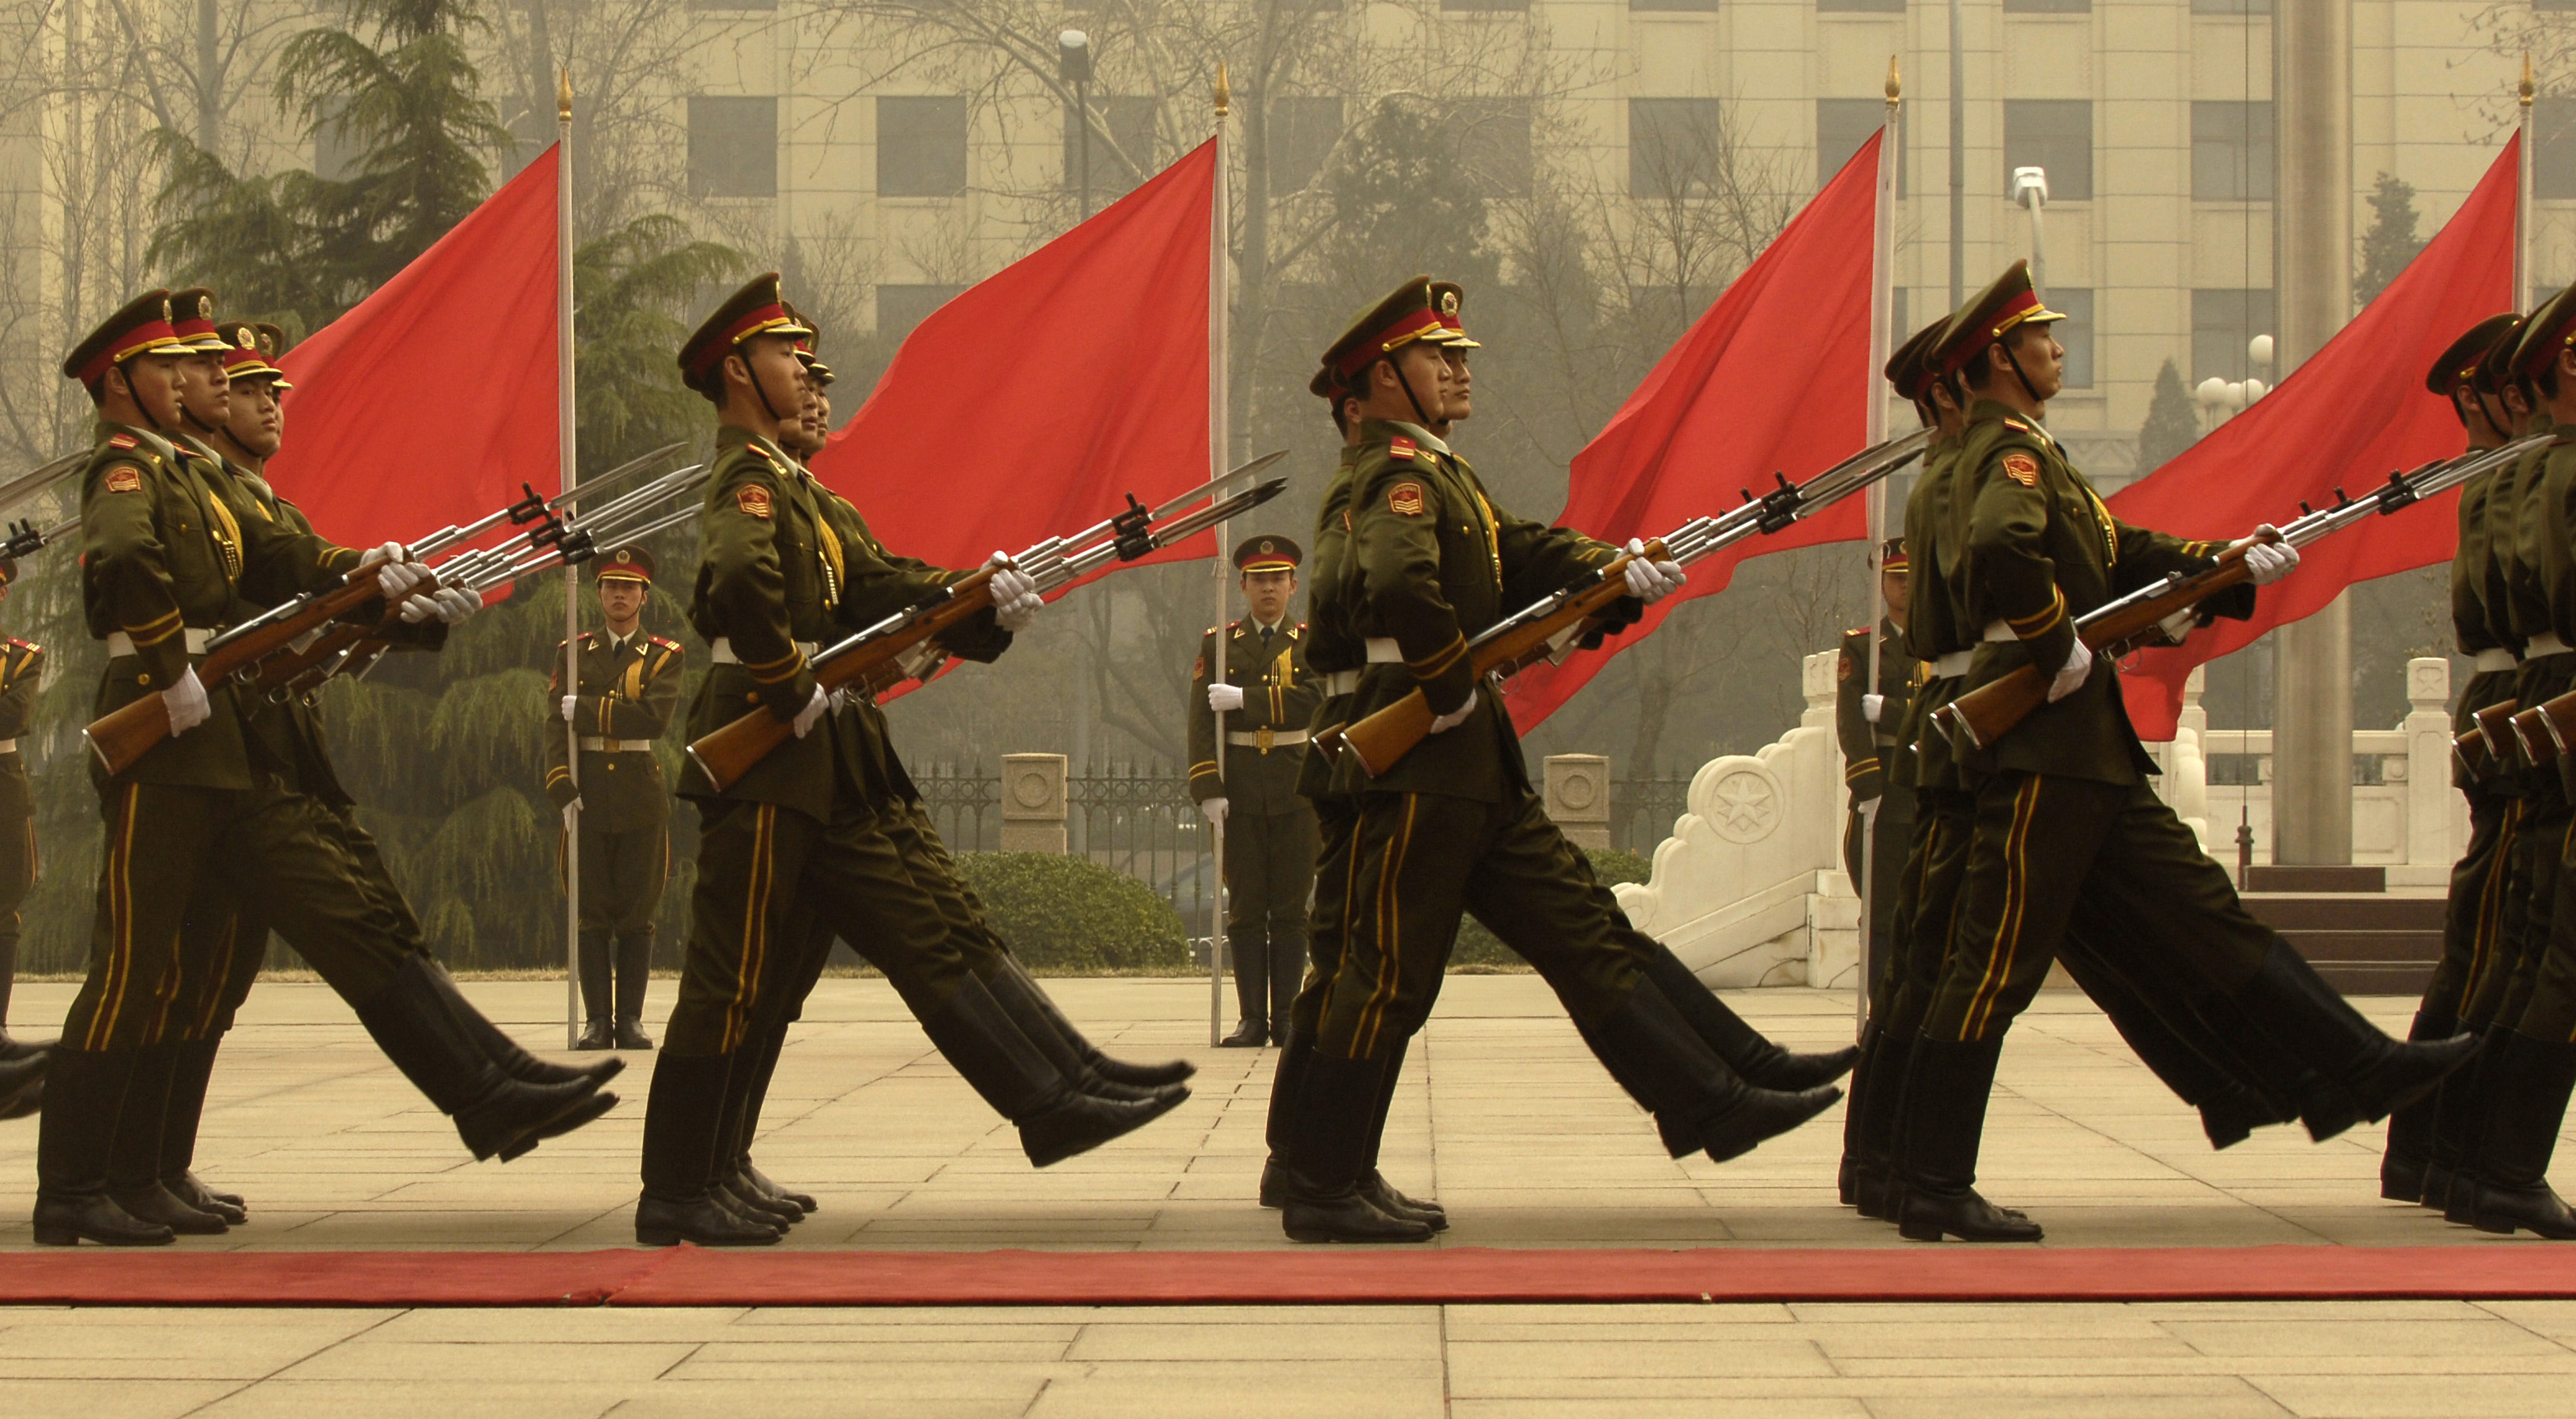 New Chinese Military Strategy Casts U.S. Military in Asia as Destabilizing - USNI News